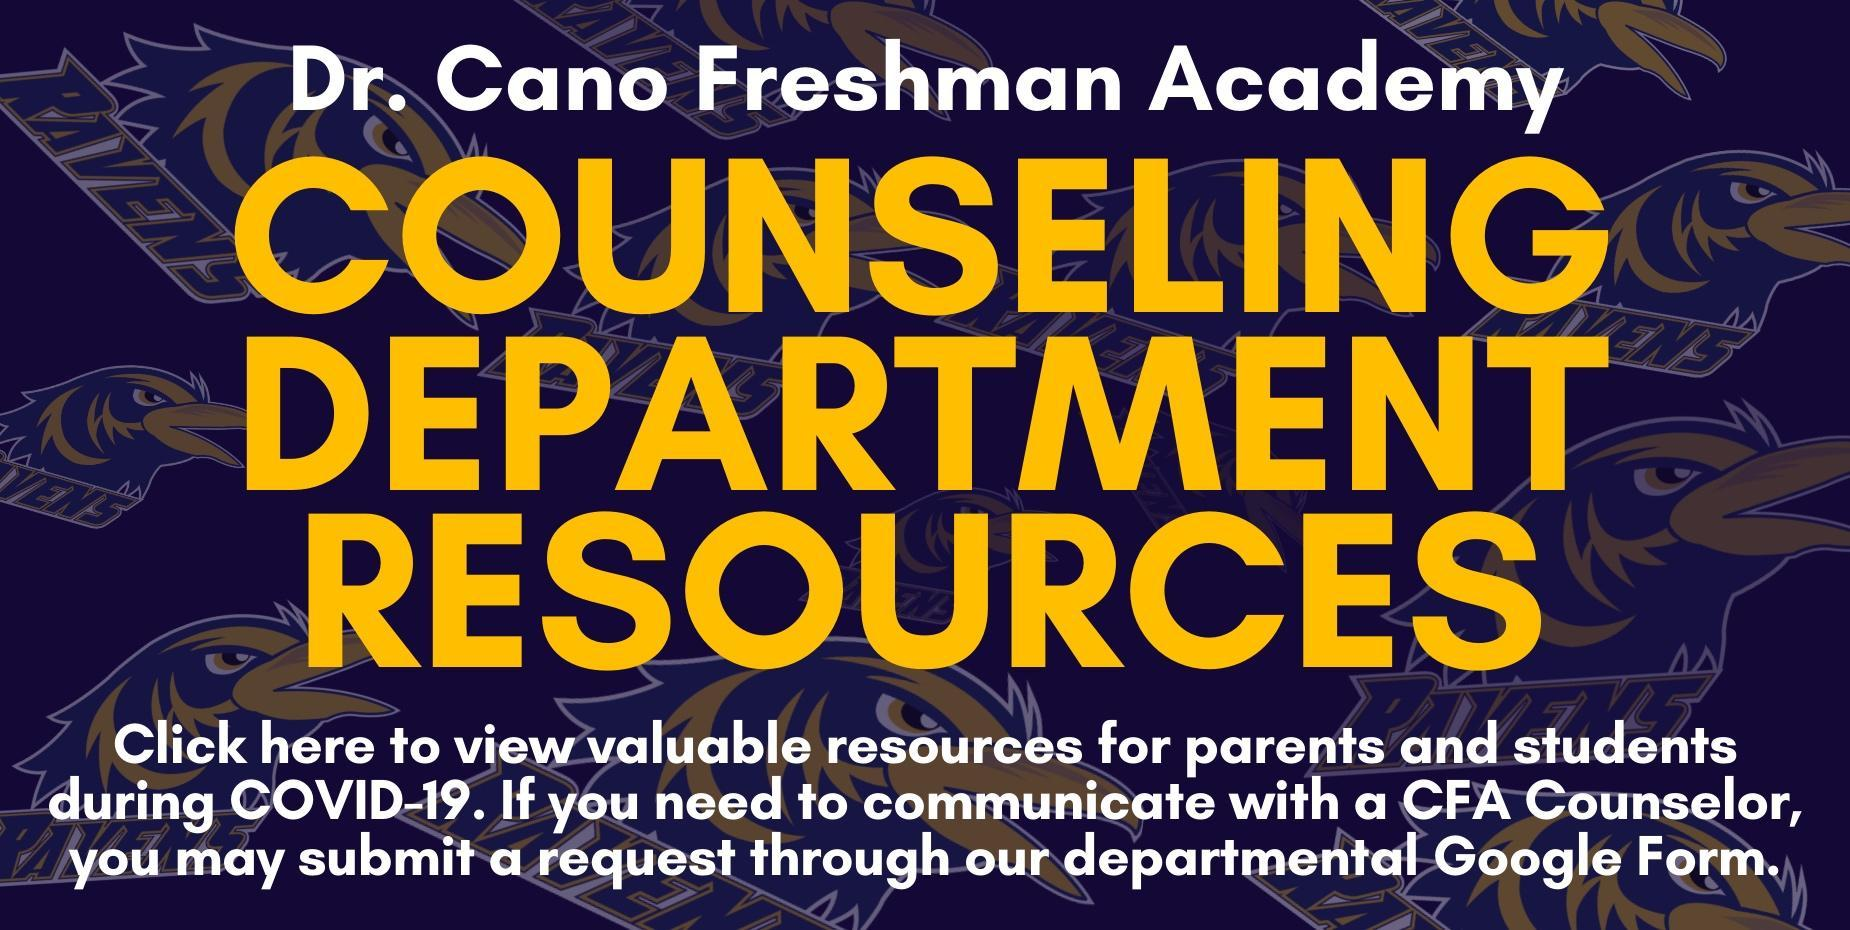 Counseling Department Resources